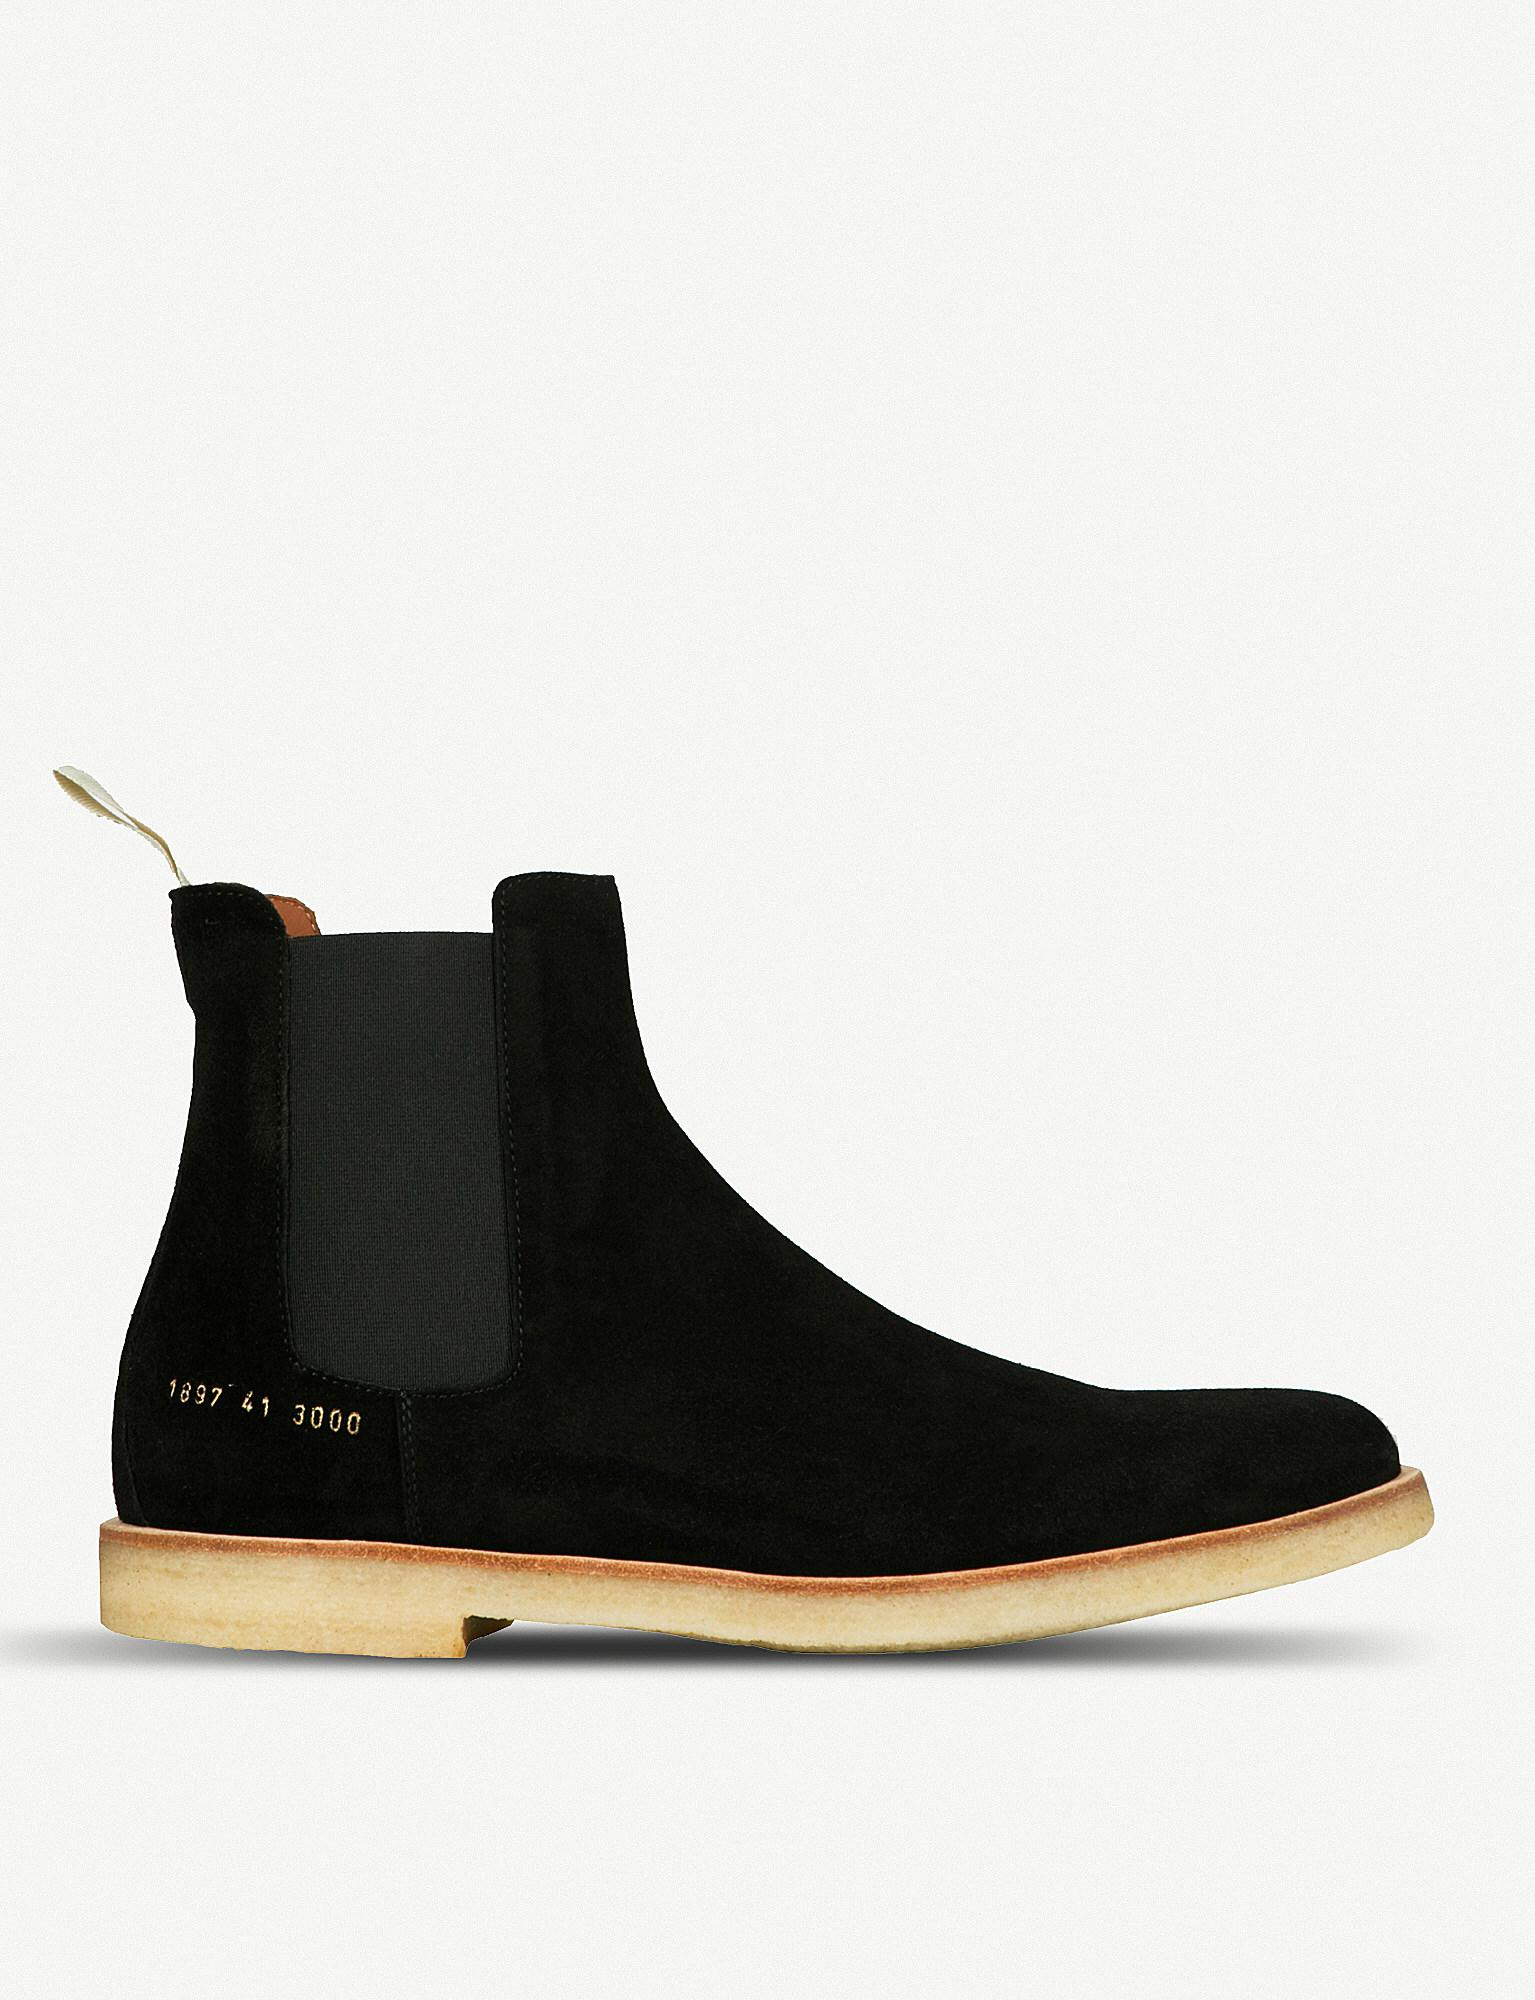 Common Projects Leather Round-Toe Boots sale top quality pETl1HC